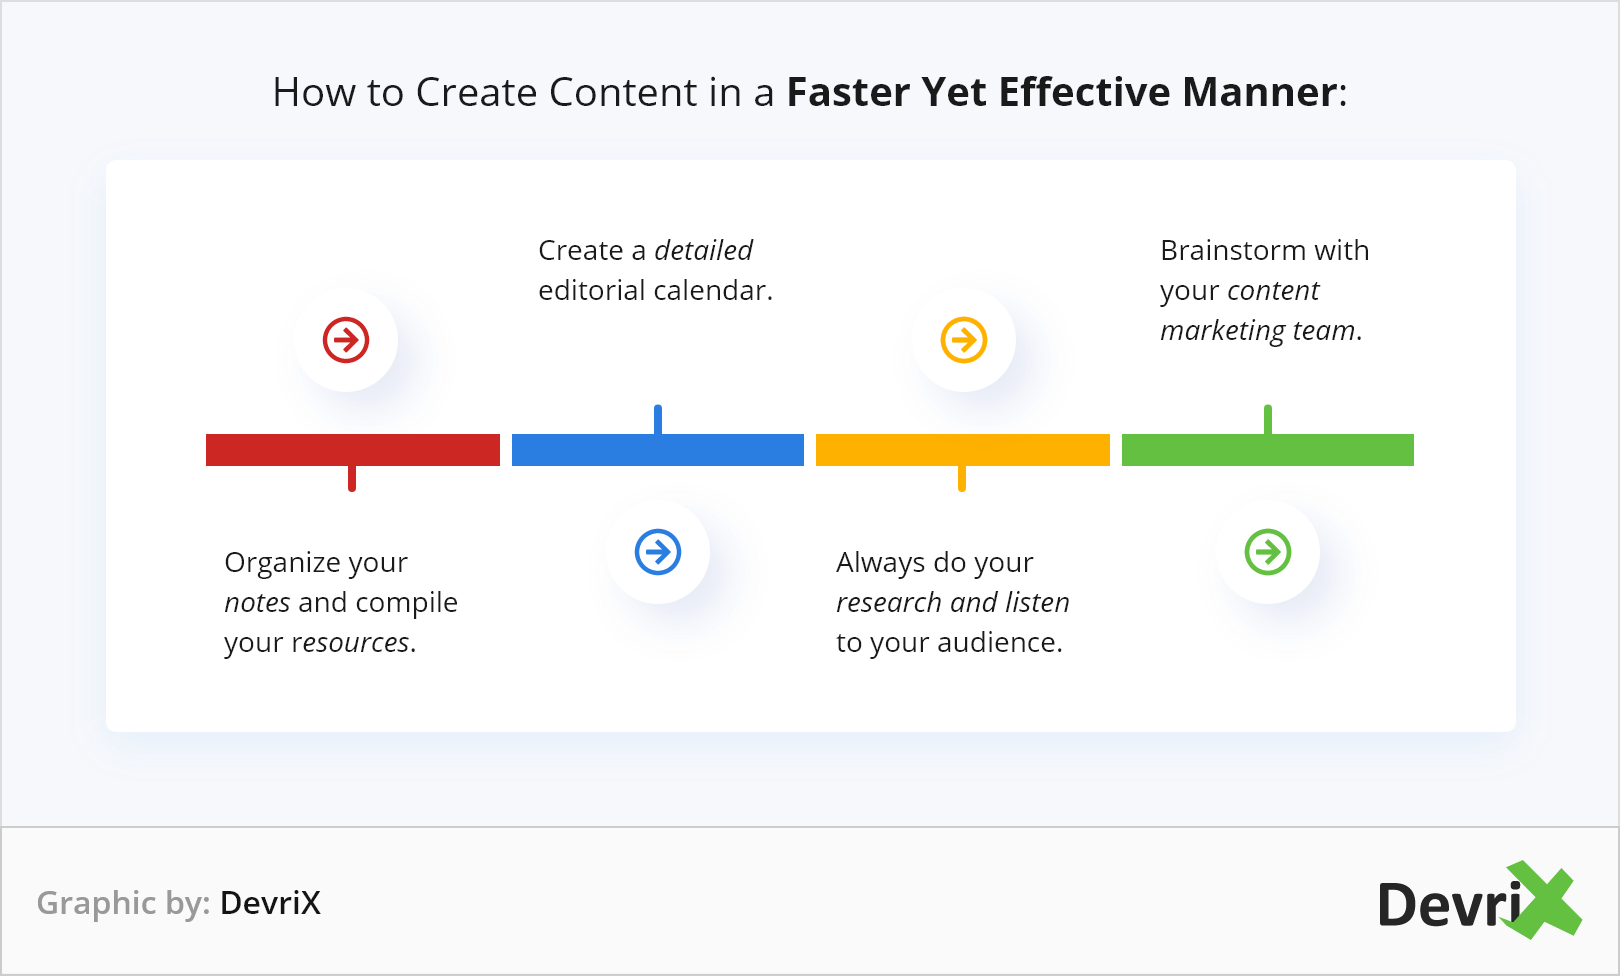 How to Create Content in a Faster Yet Effective Manner